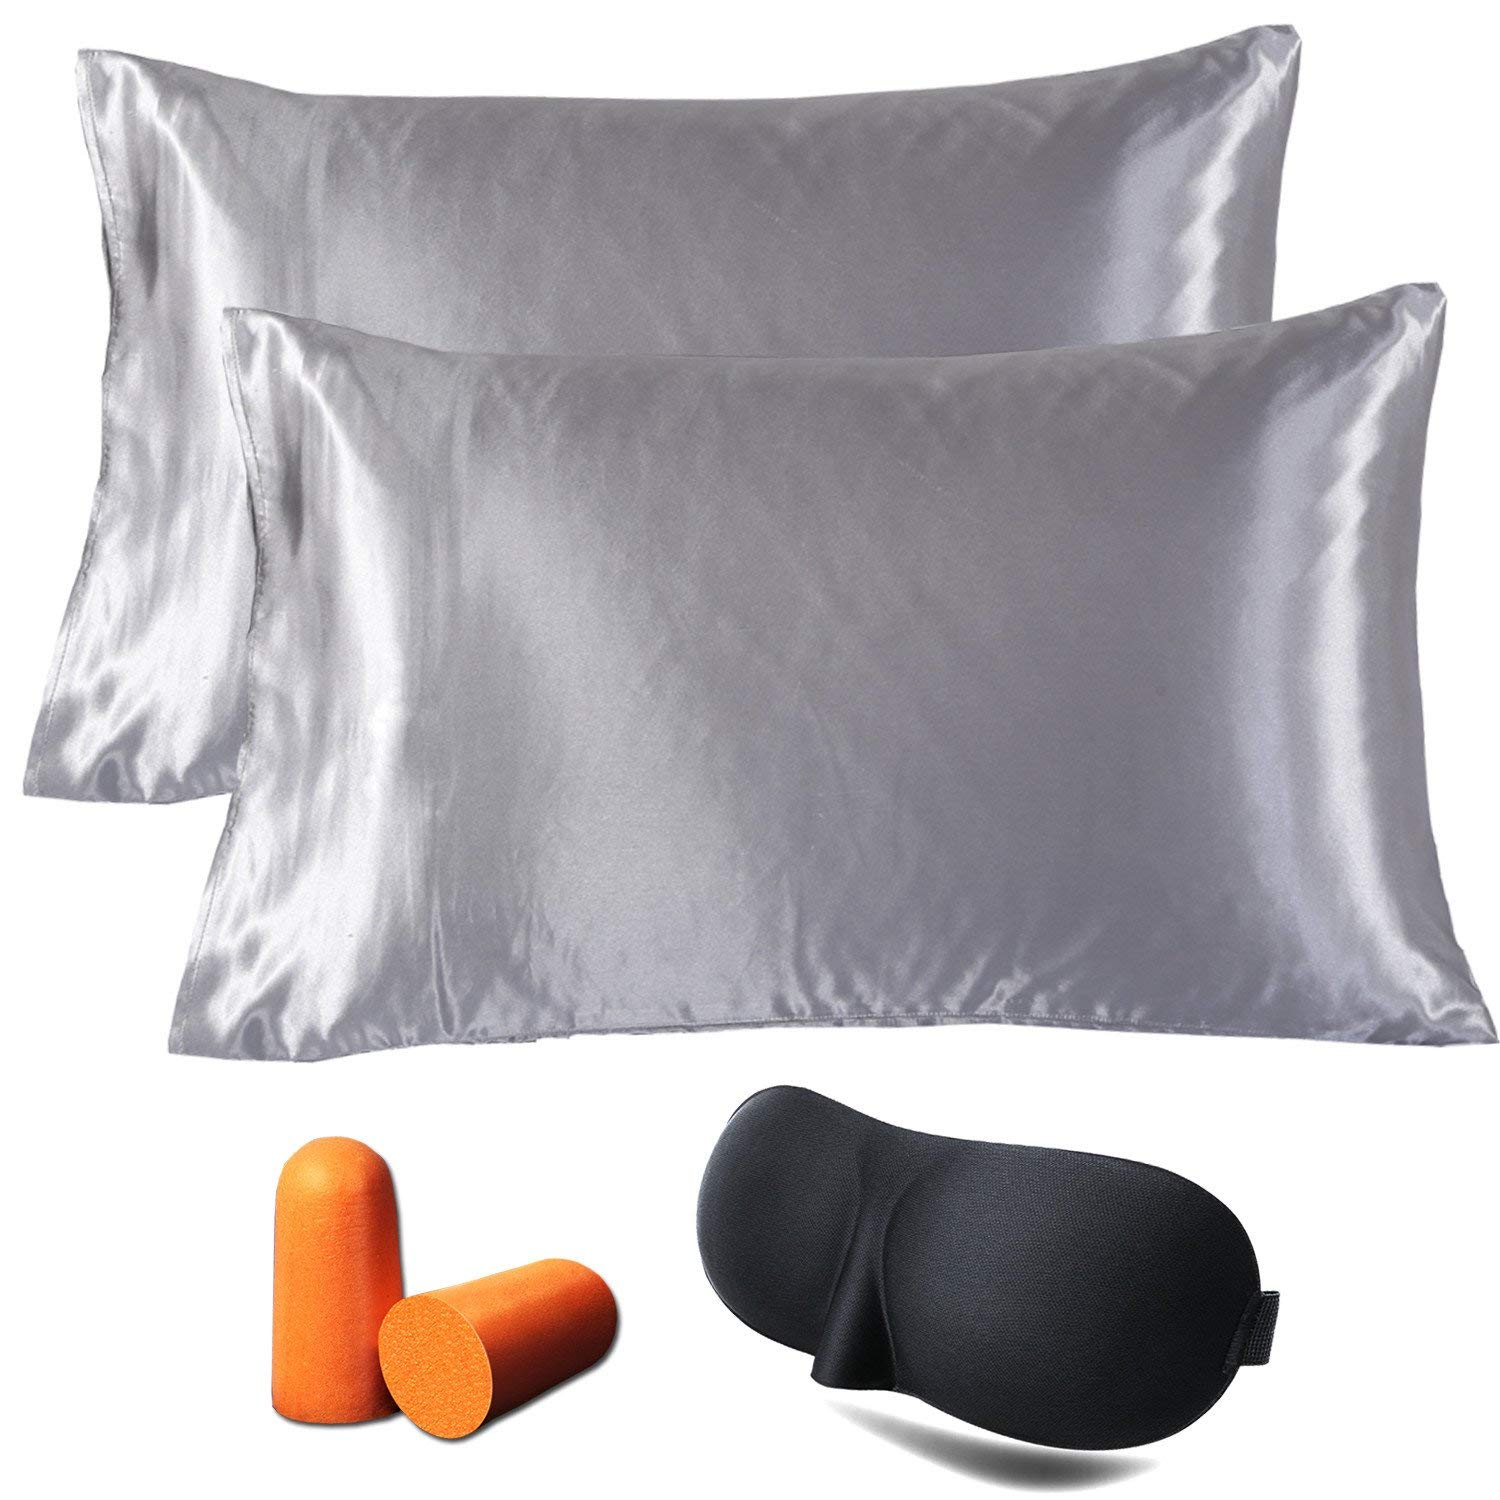 Satin Pillowcases With Zipper Cheap King Size Satin Pillowcase For Hair Find King Size Satin